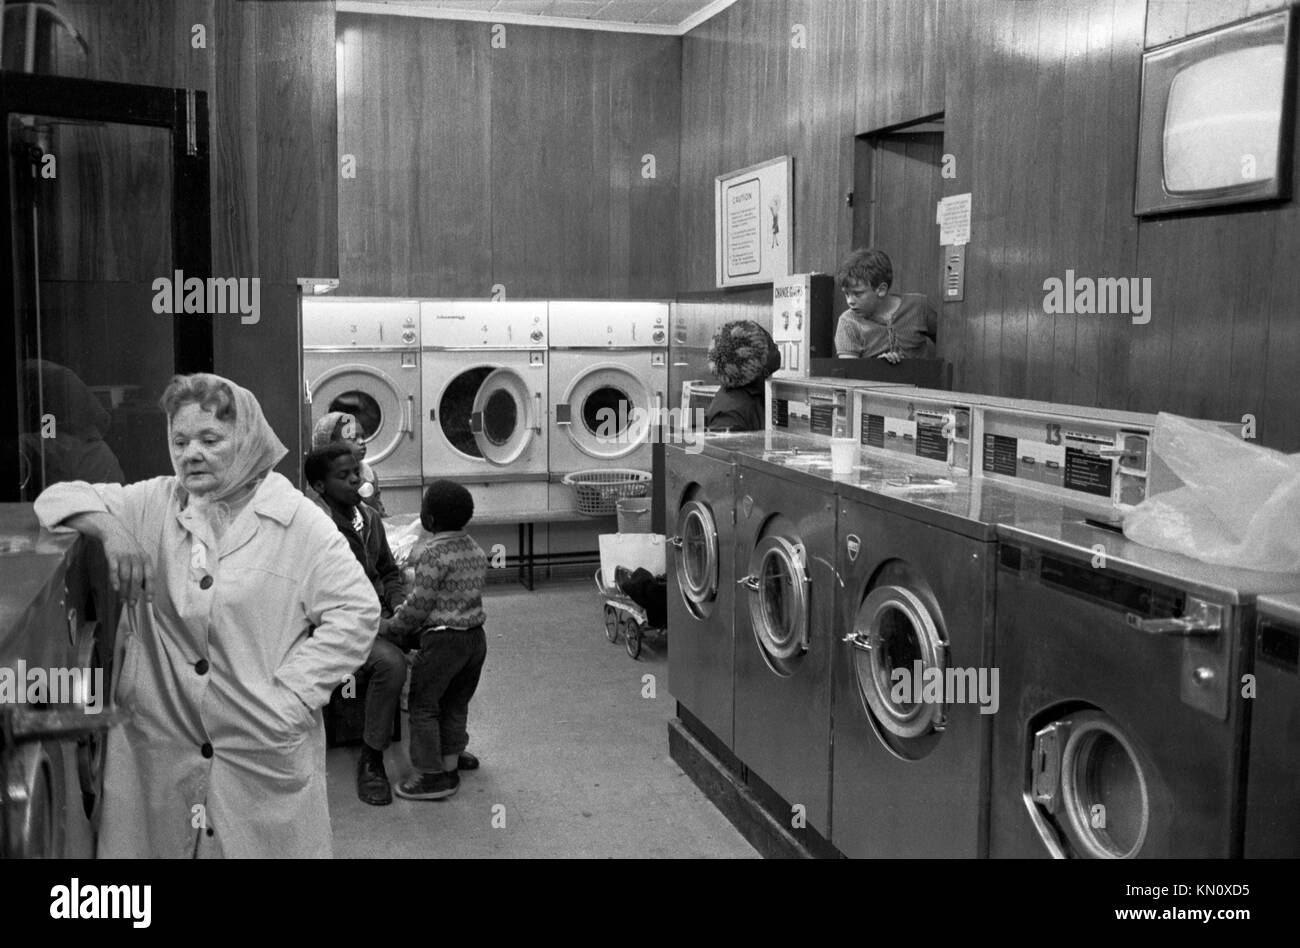 Washing Machine 1970s Stock Photos Amp Washing Machine 1970s